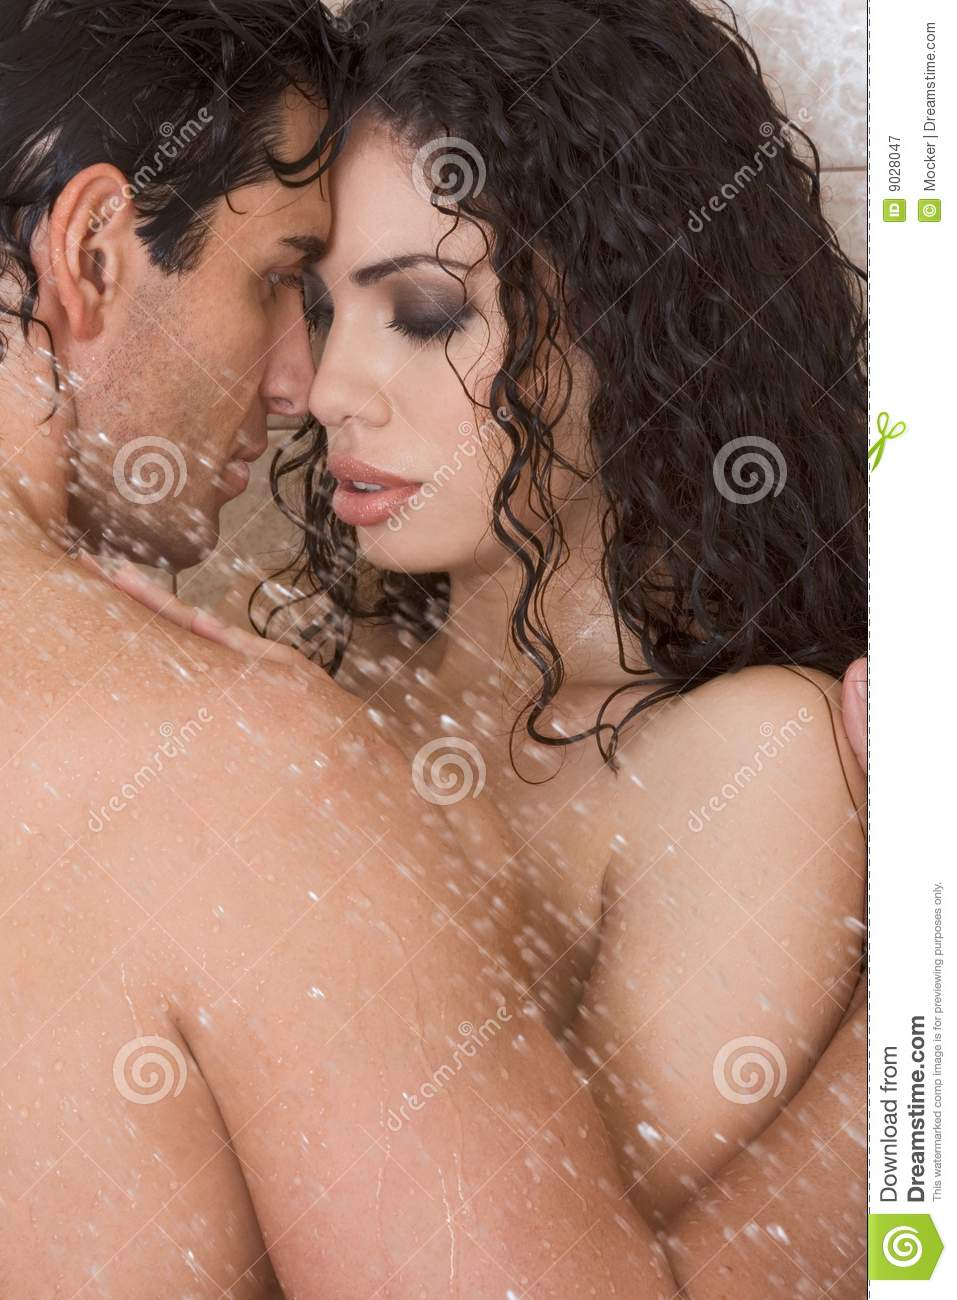 Think, naked lady and man kissing